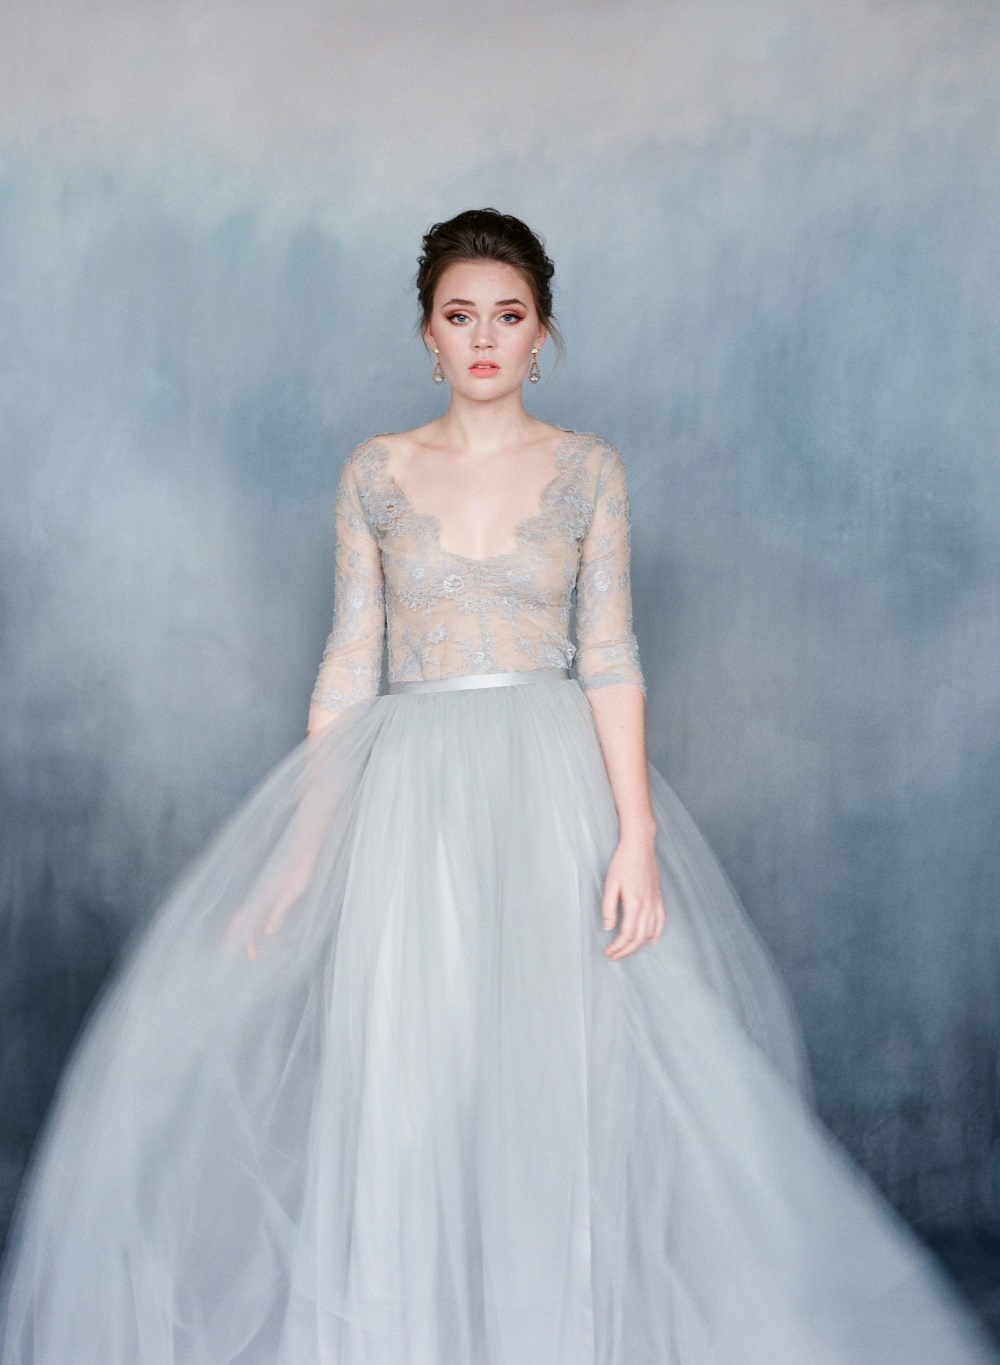 Heavenly Blue Lace Wedding Dress from Emily Riggs - Chic Vintage ...